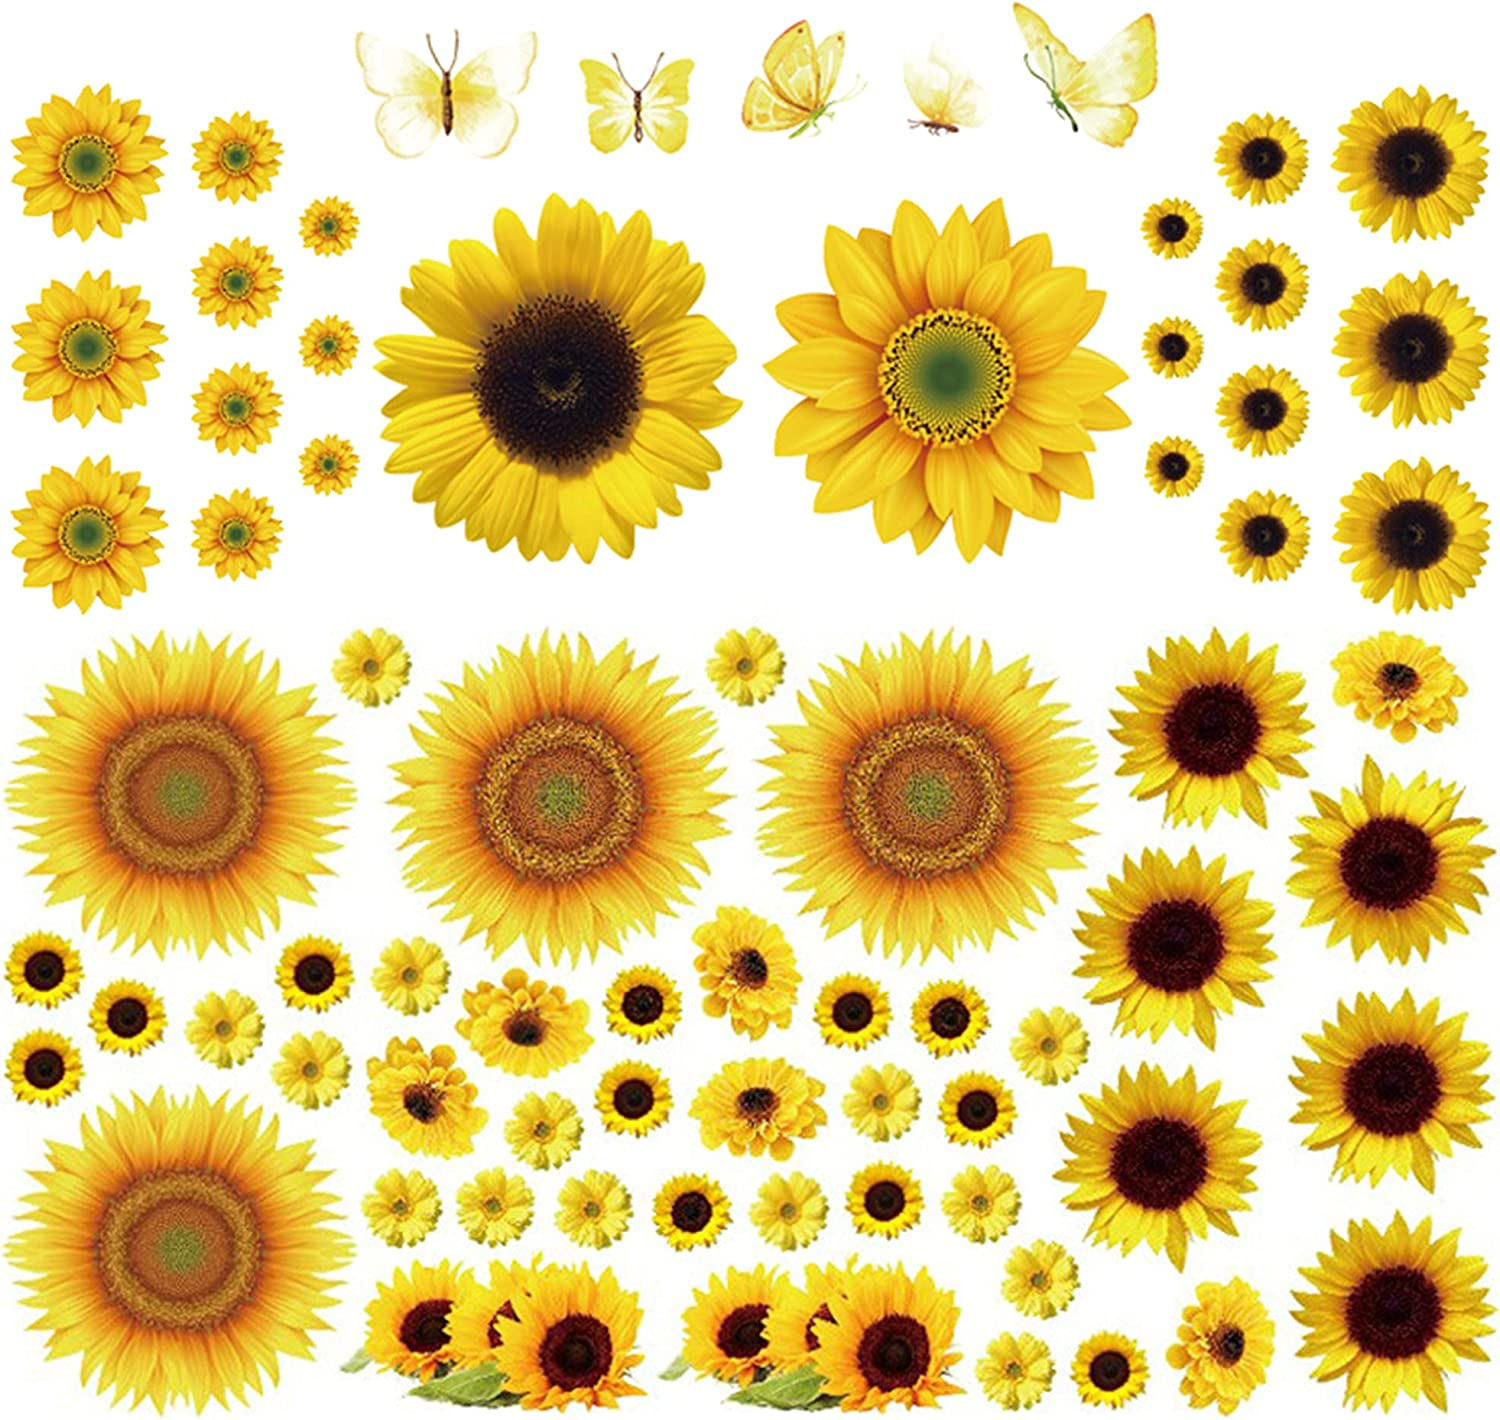 72pcs Sunflower Wall Decals with Butterfly Wall Stickers Decor Yellow Flowers Removable DIY PVC Butterflie Mural Sticker for Home Decoration Kids Room Bedroom Art Decor